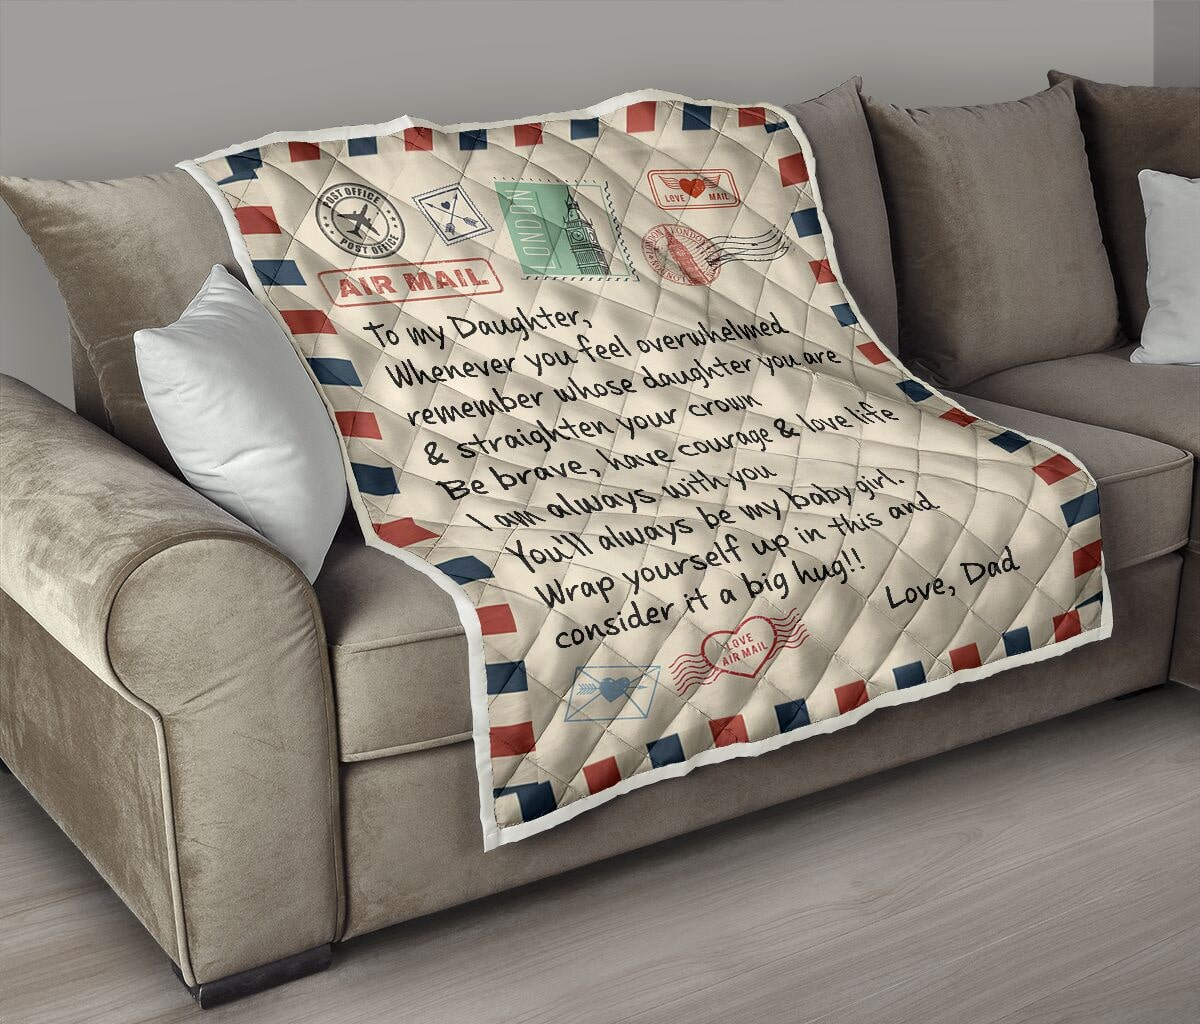 air mail letter to my daughter youll always be my baby girl your dad quilt 3